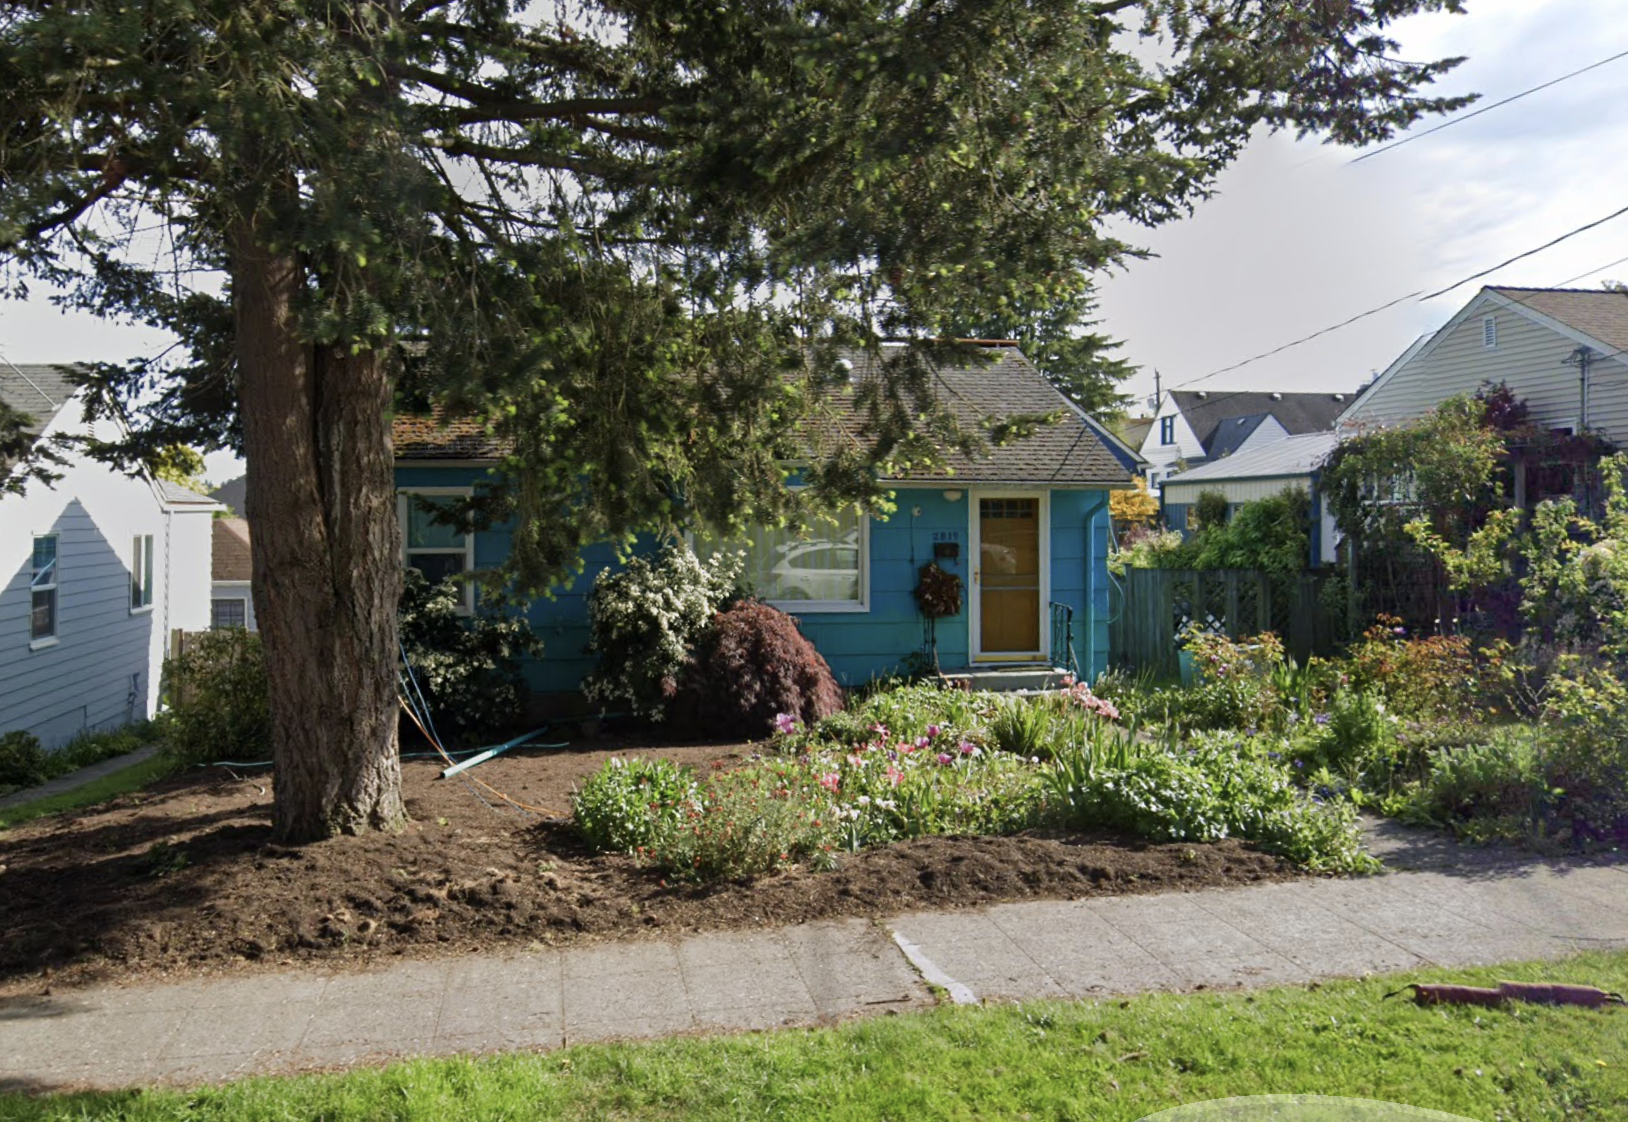 The house as it looked before the lifting project (Google Street View - May 2019)